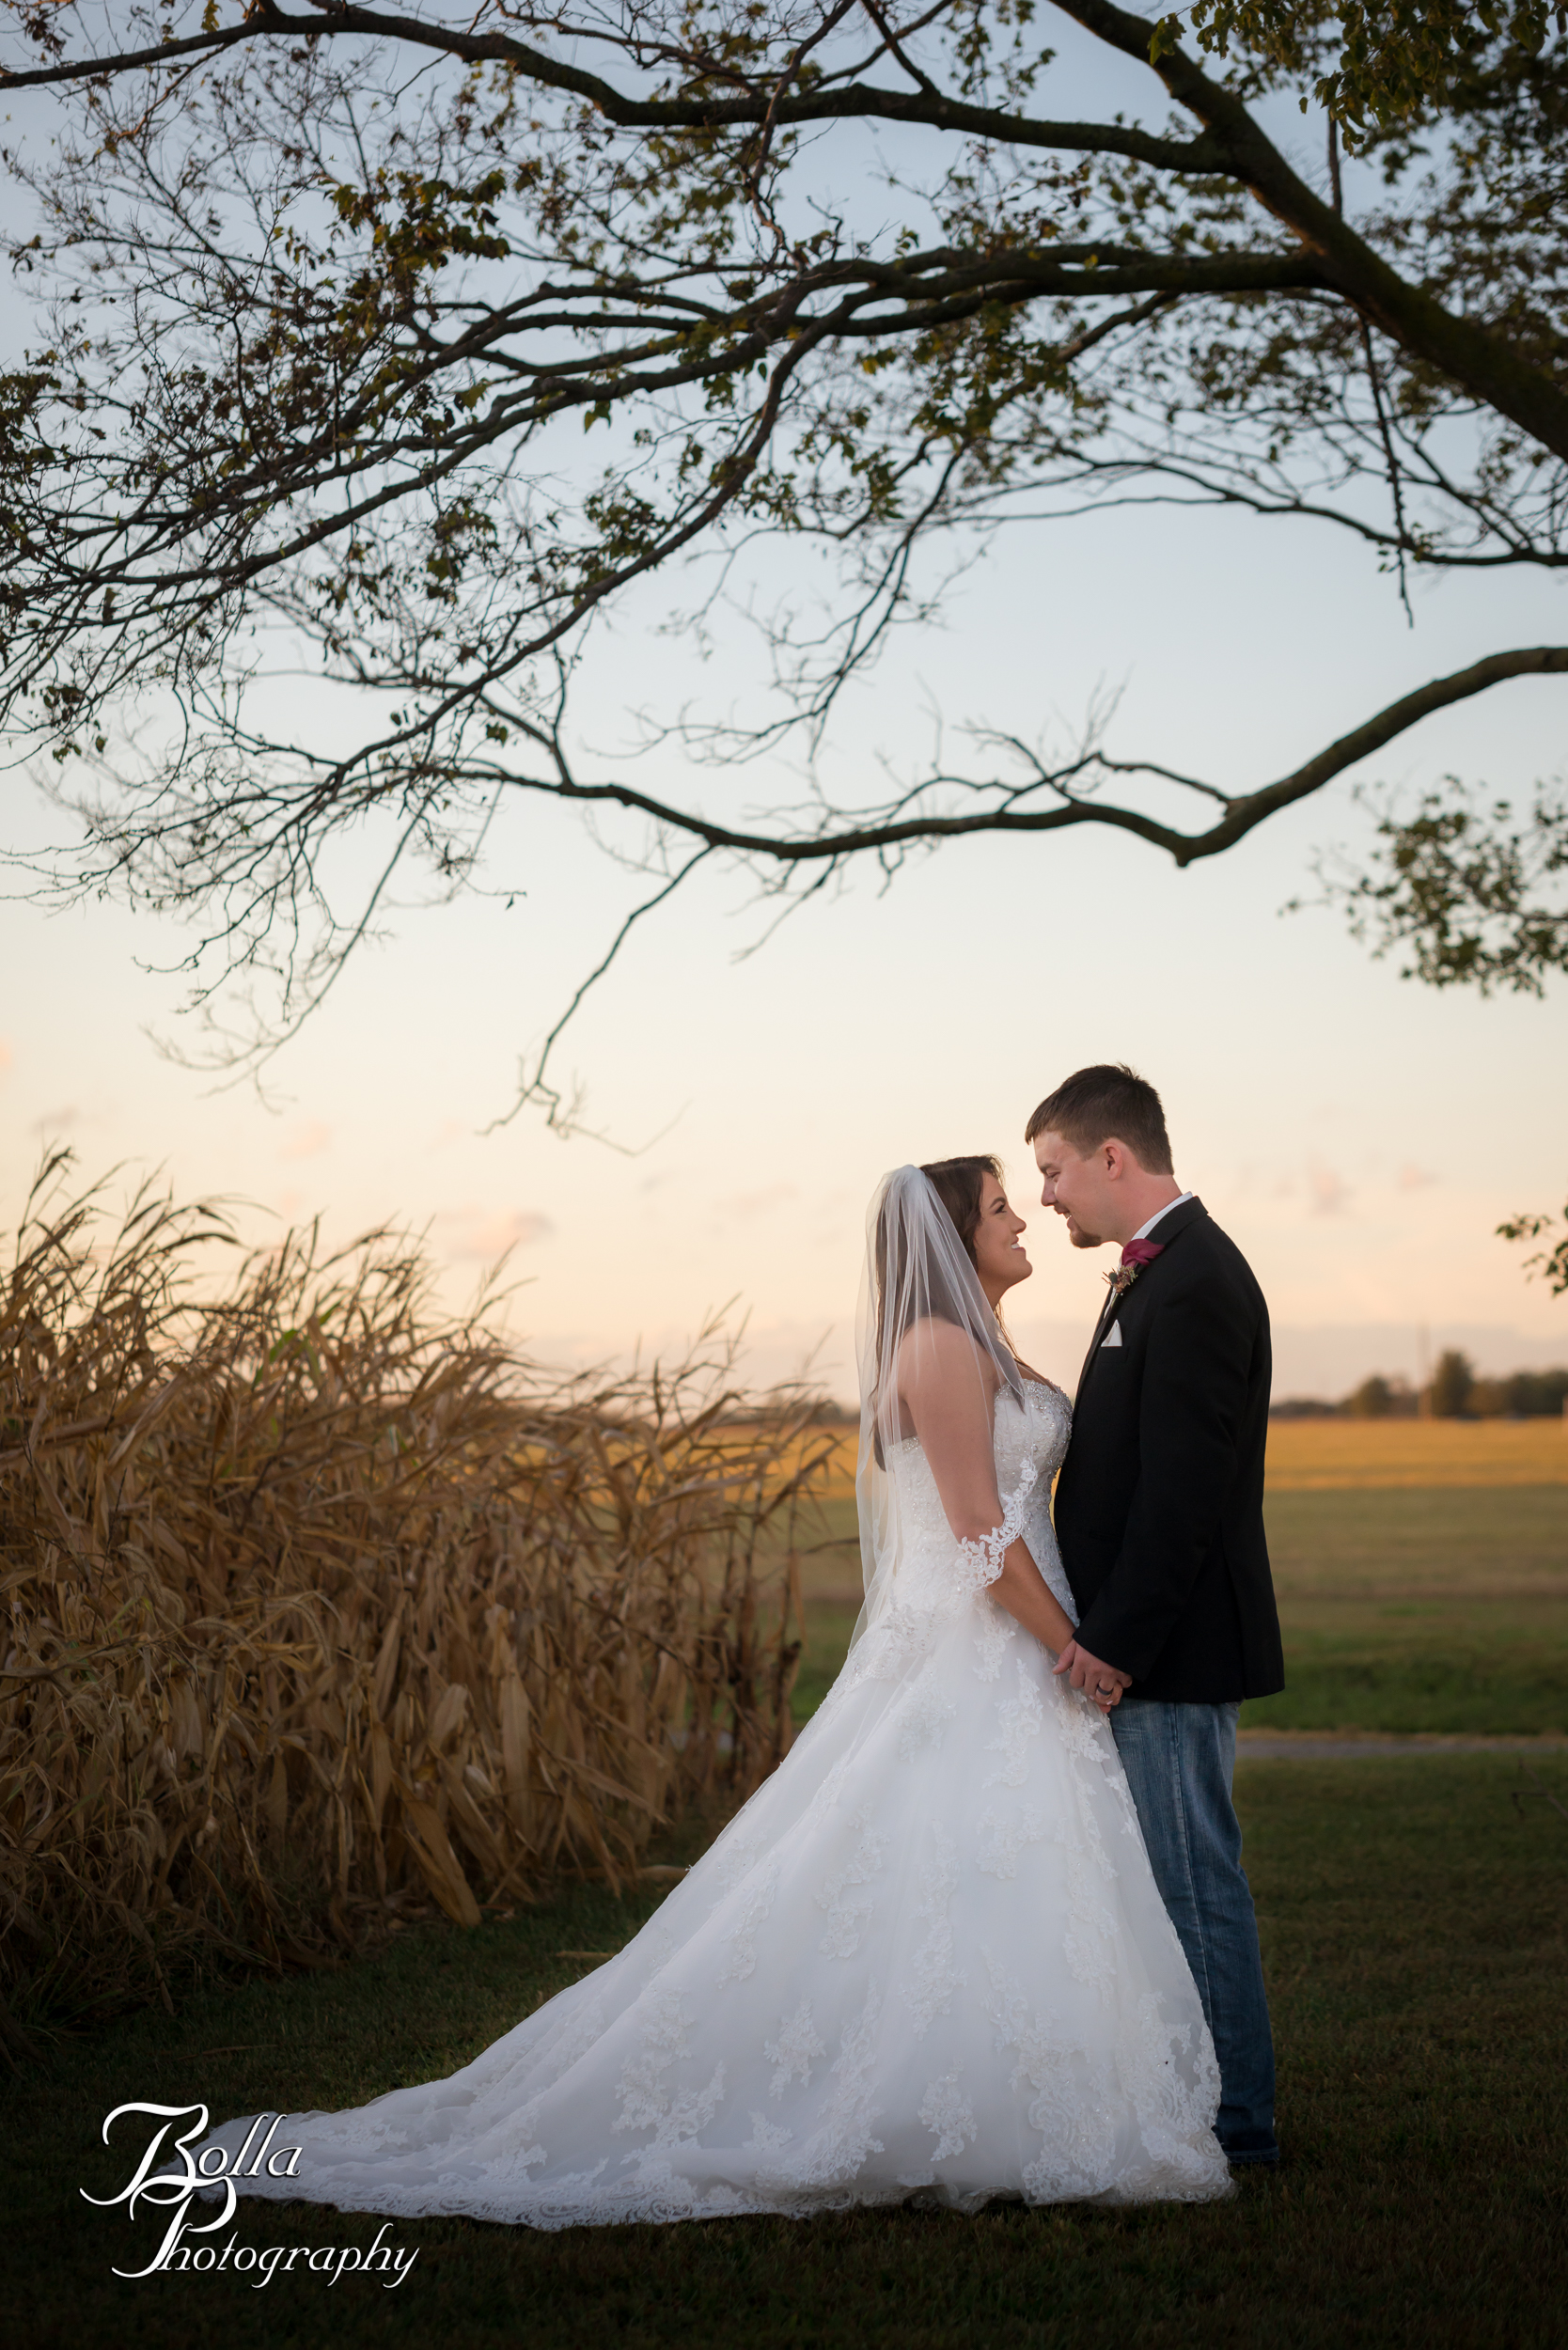 Bolla_photography_edwardsville_wedding_photographer_st_louis_weddings_Amber_Korsmeyer_Kyle_Gruner_Schwarz_Barn_blue_jeans_pickup_truck_autumn-0004.jpg